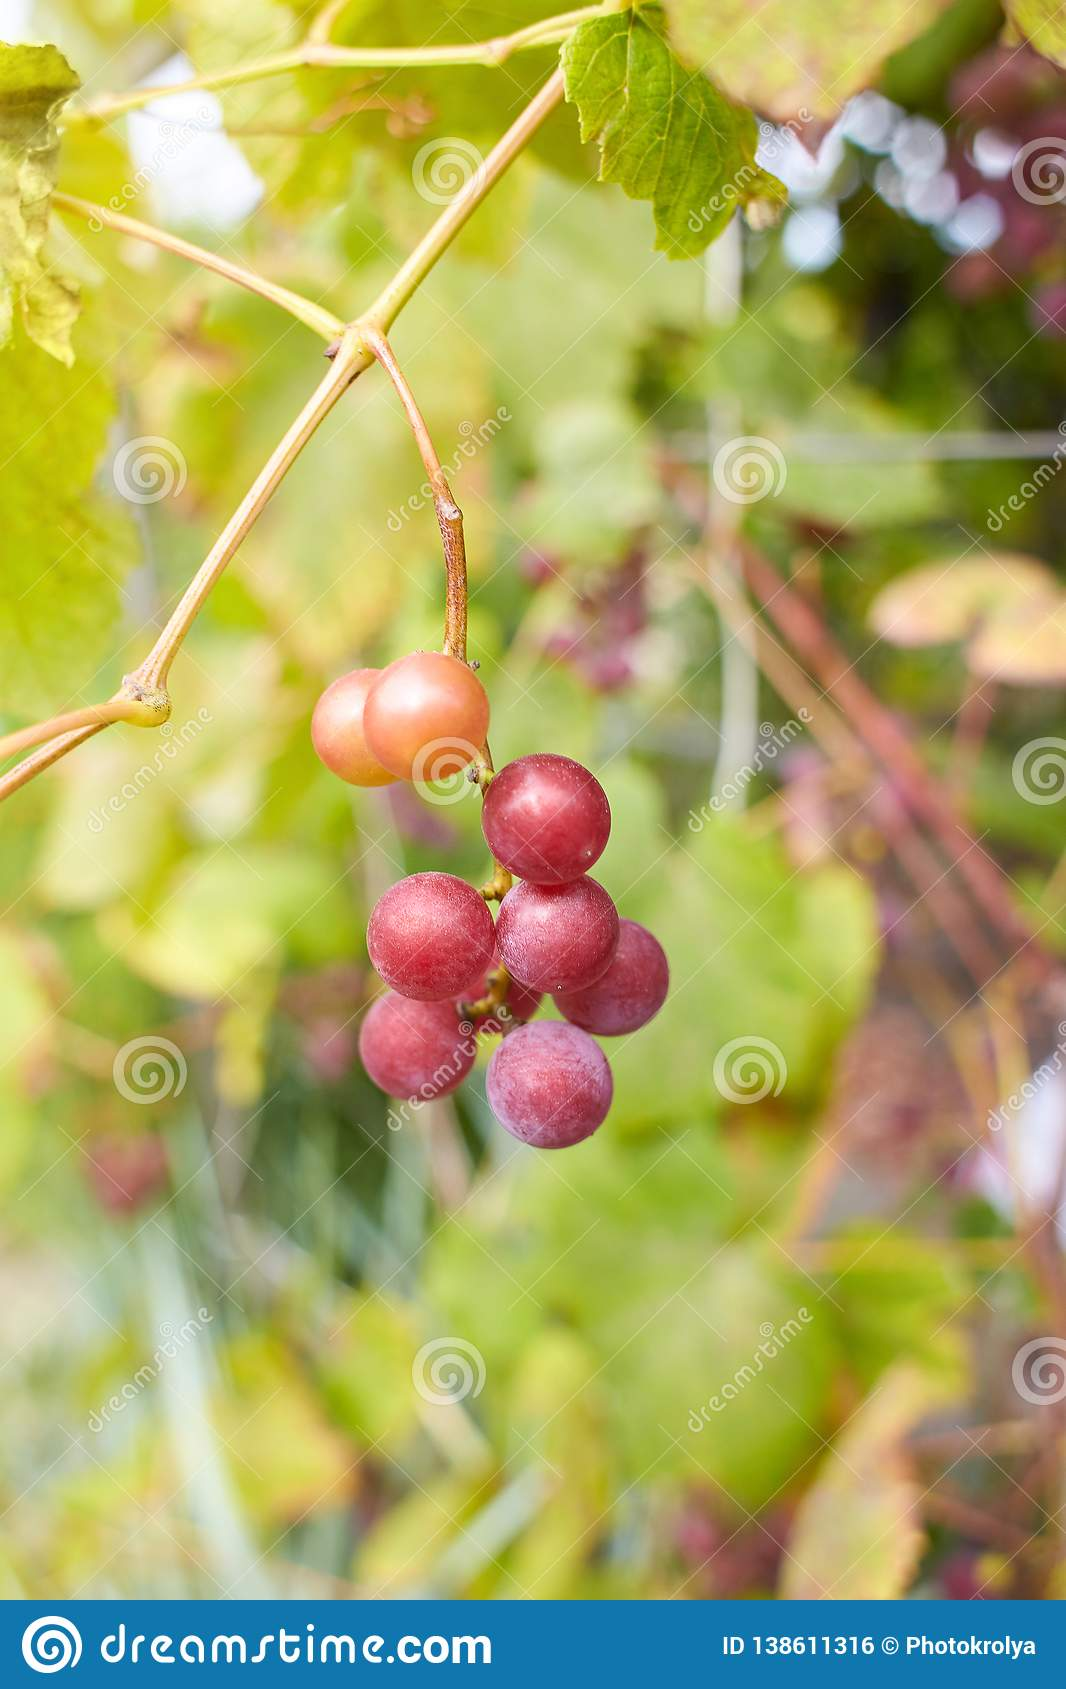 Fresh brunch of purple grapes in vineyard on blurred nature background.